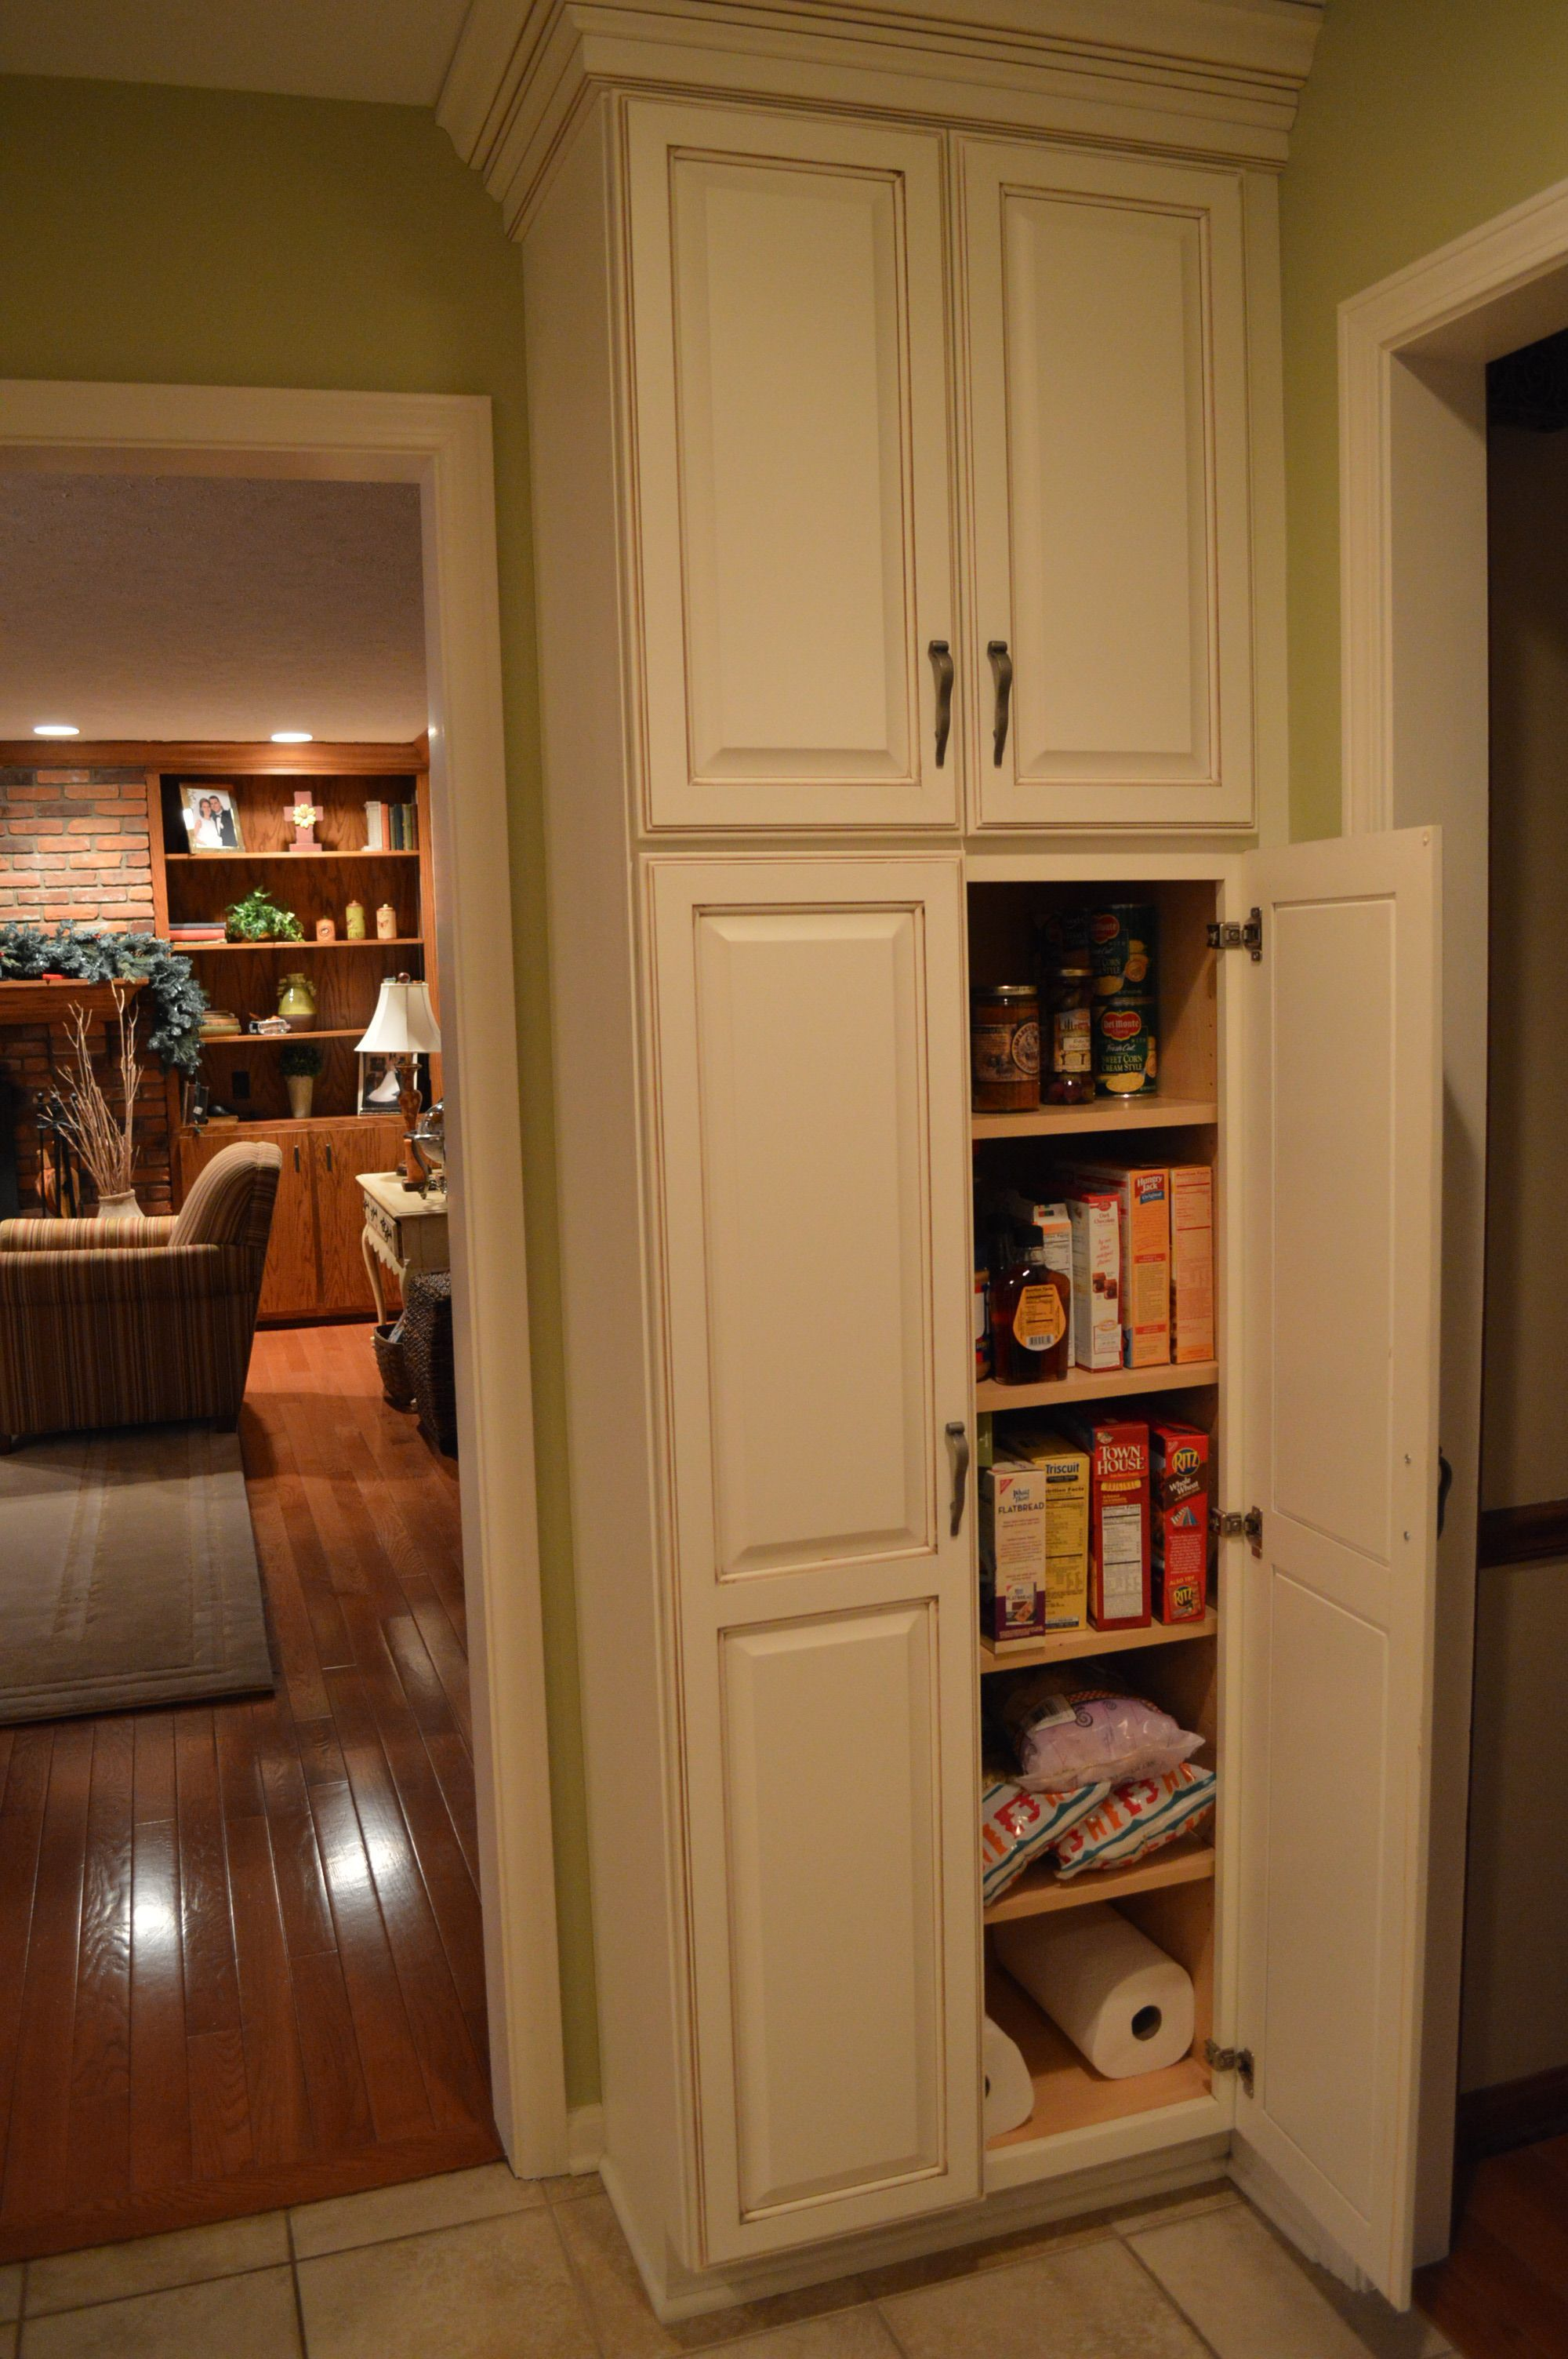 Inch Pantry Cabinet With Kitchen Remodel I Love Kitchens With Kitchen Cabinet Pantry Unit With Stand Alone Kitchen Pantry Tall Kitchen Cabinets Pantry Design